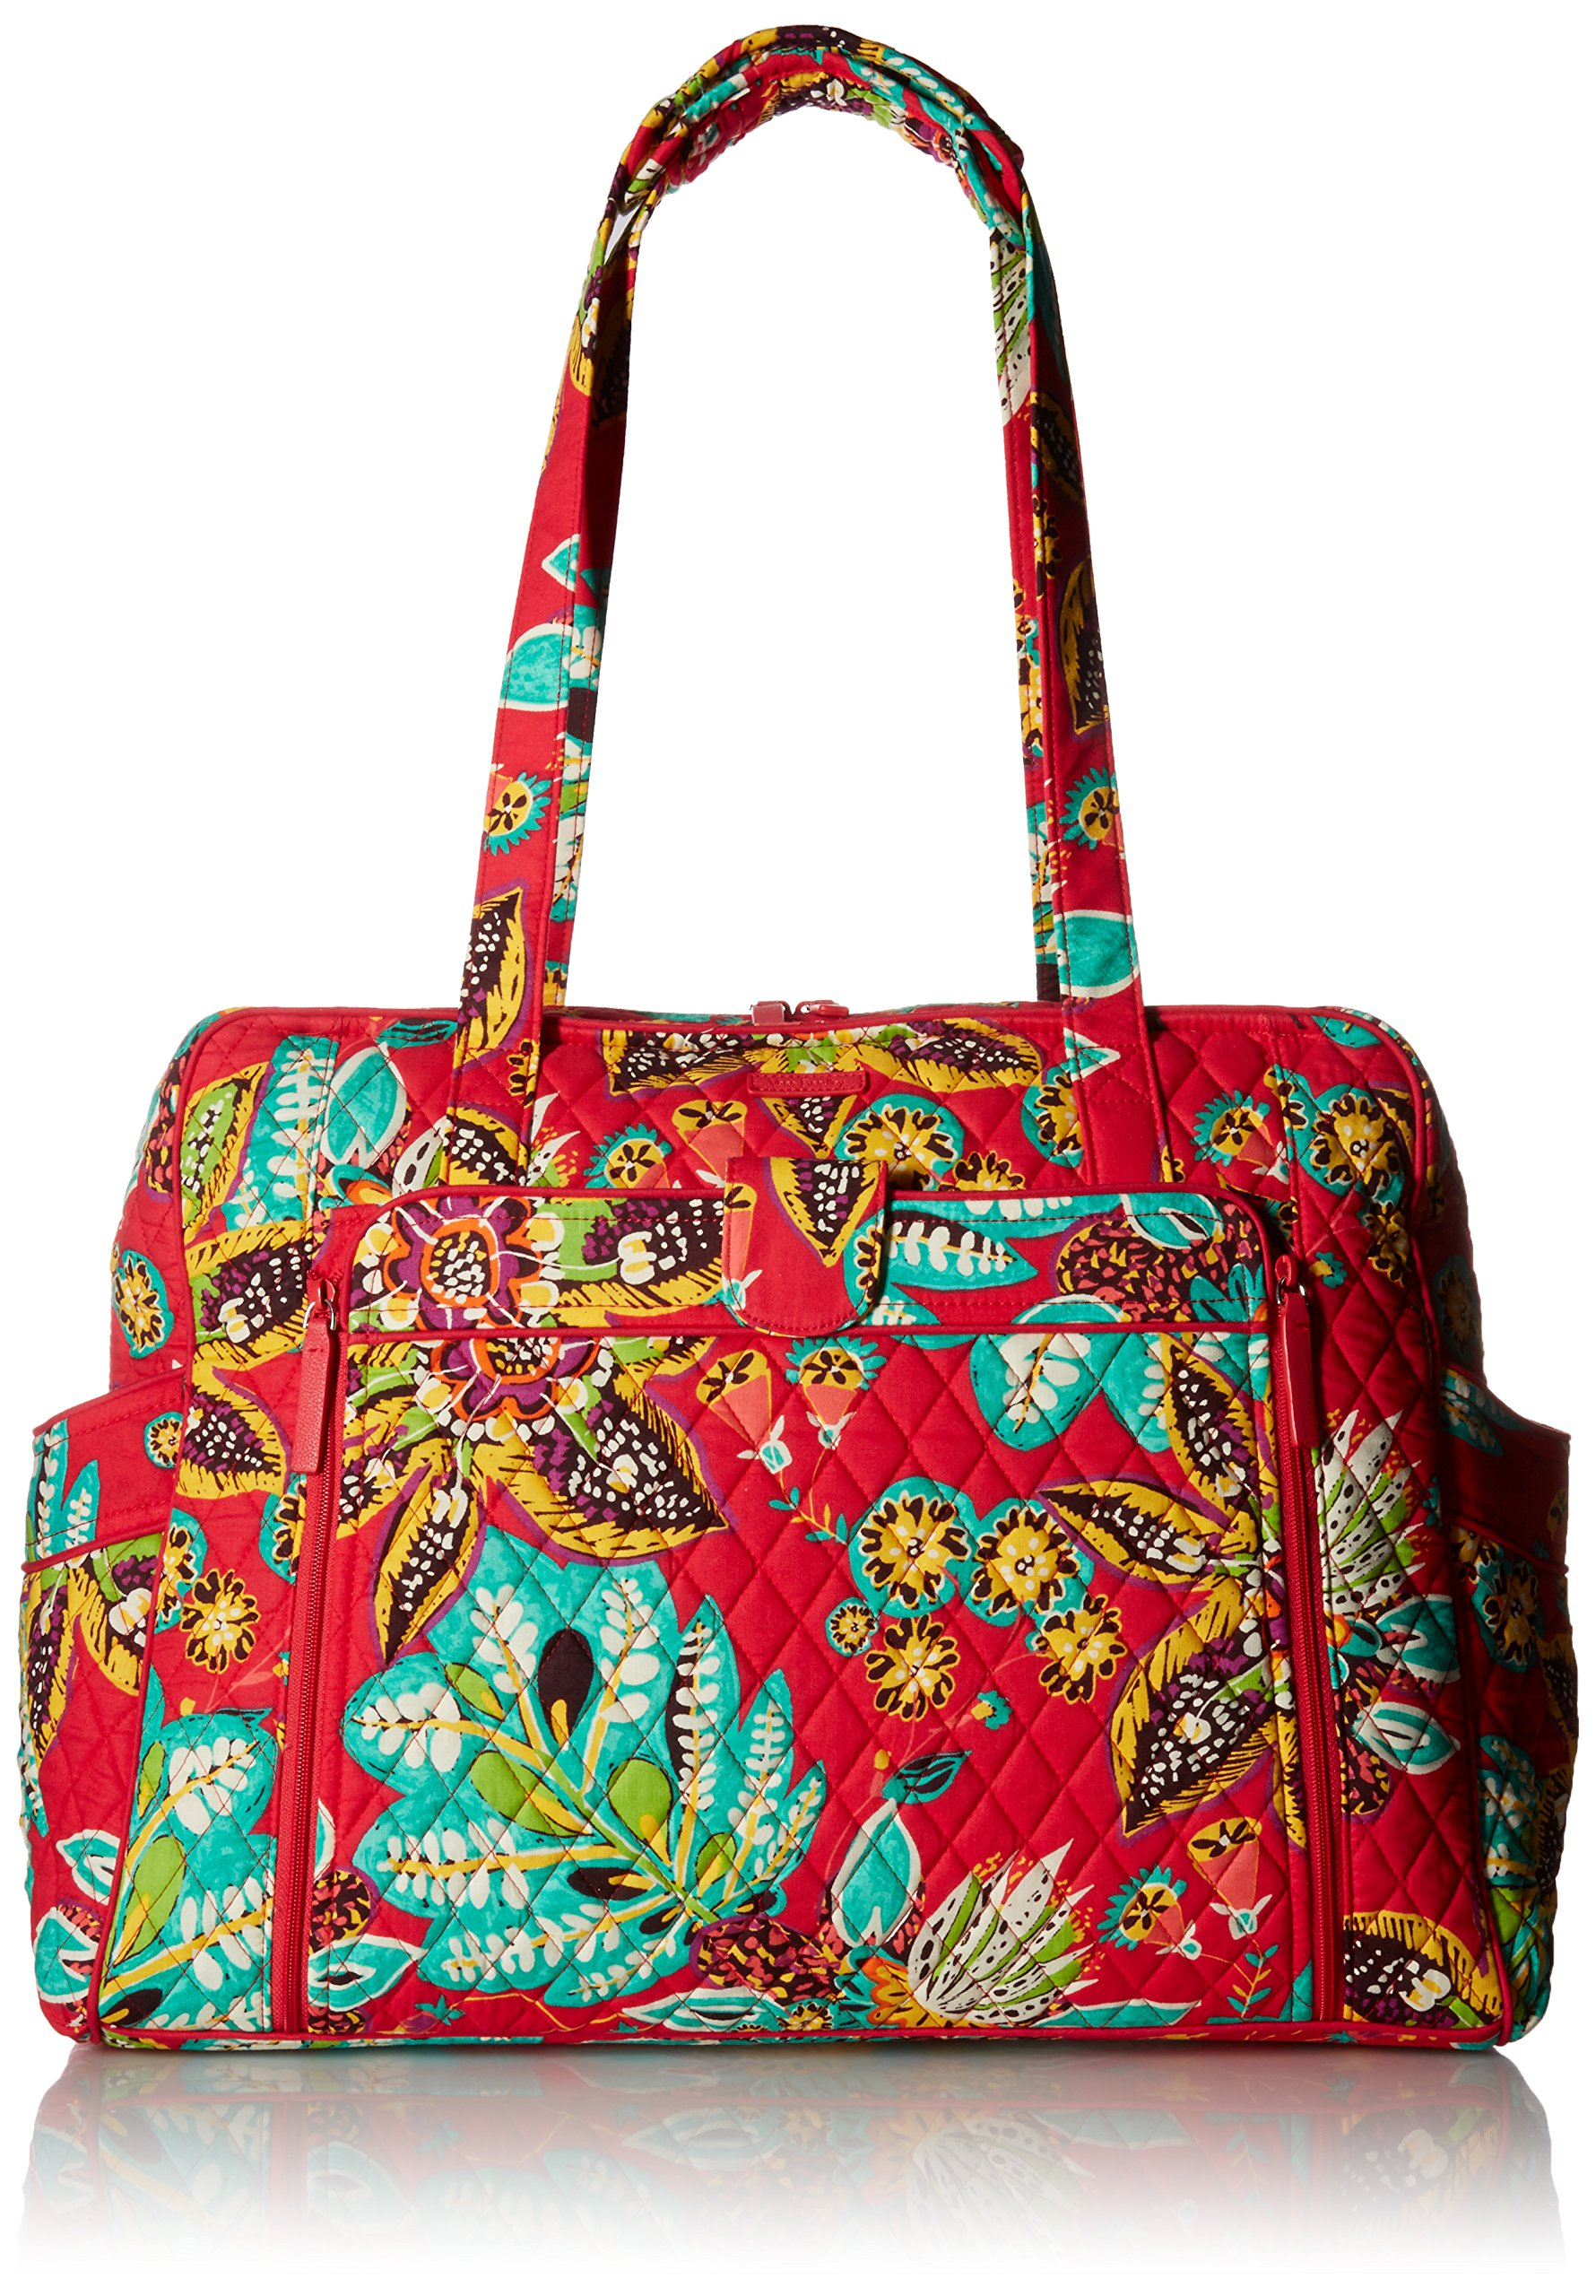 Vera Bradley Large Stroll Around Baby Bag, Rumba by Vera Bradley